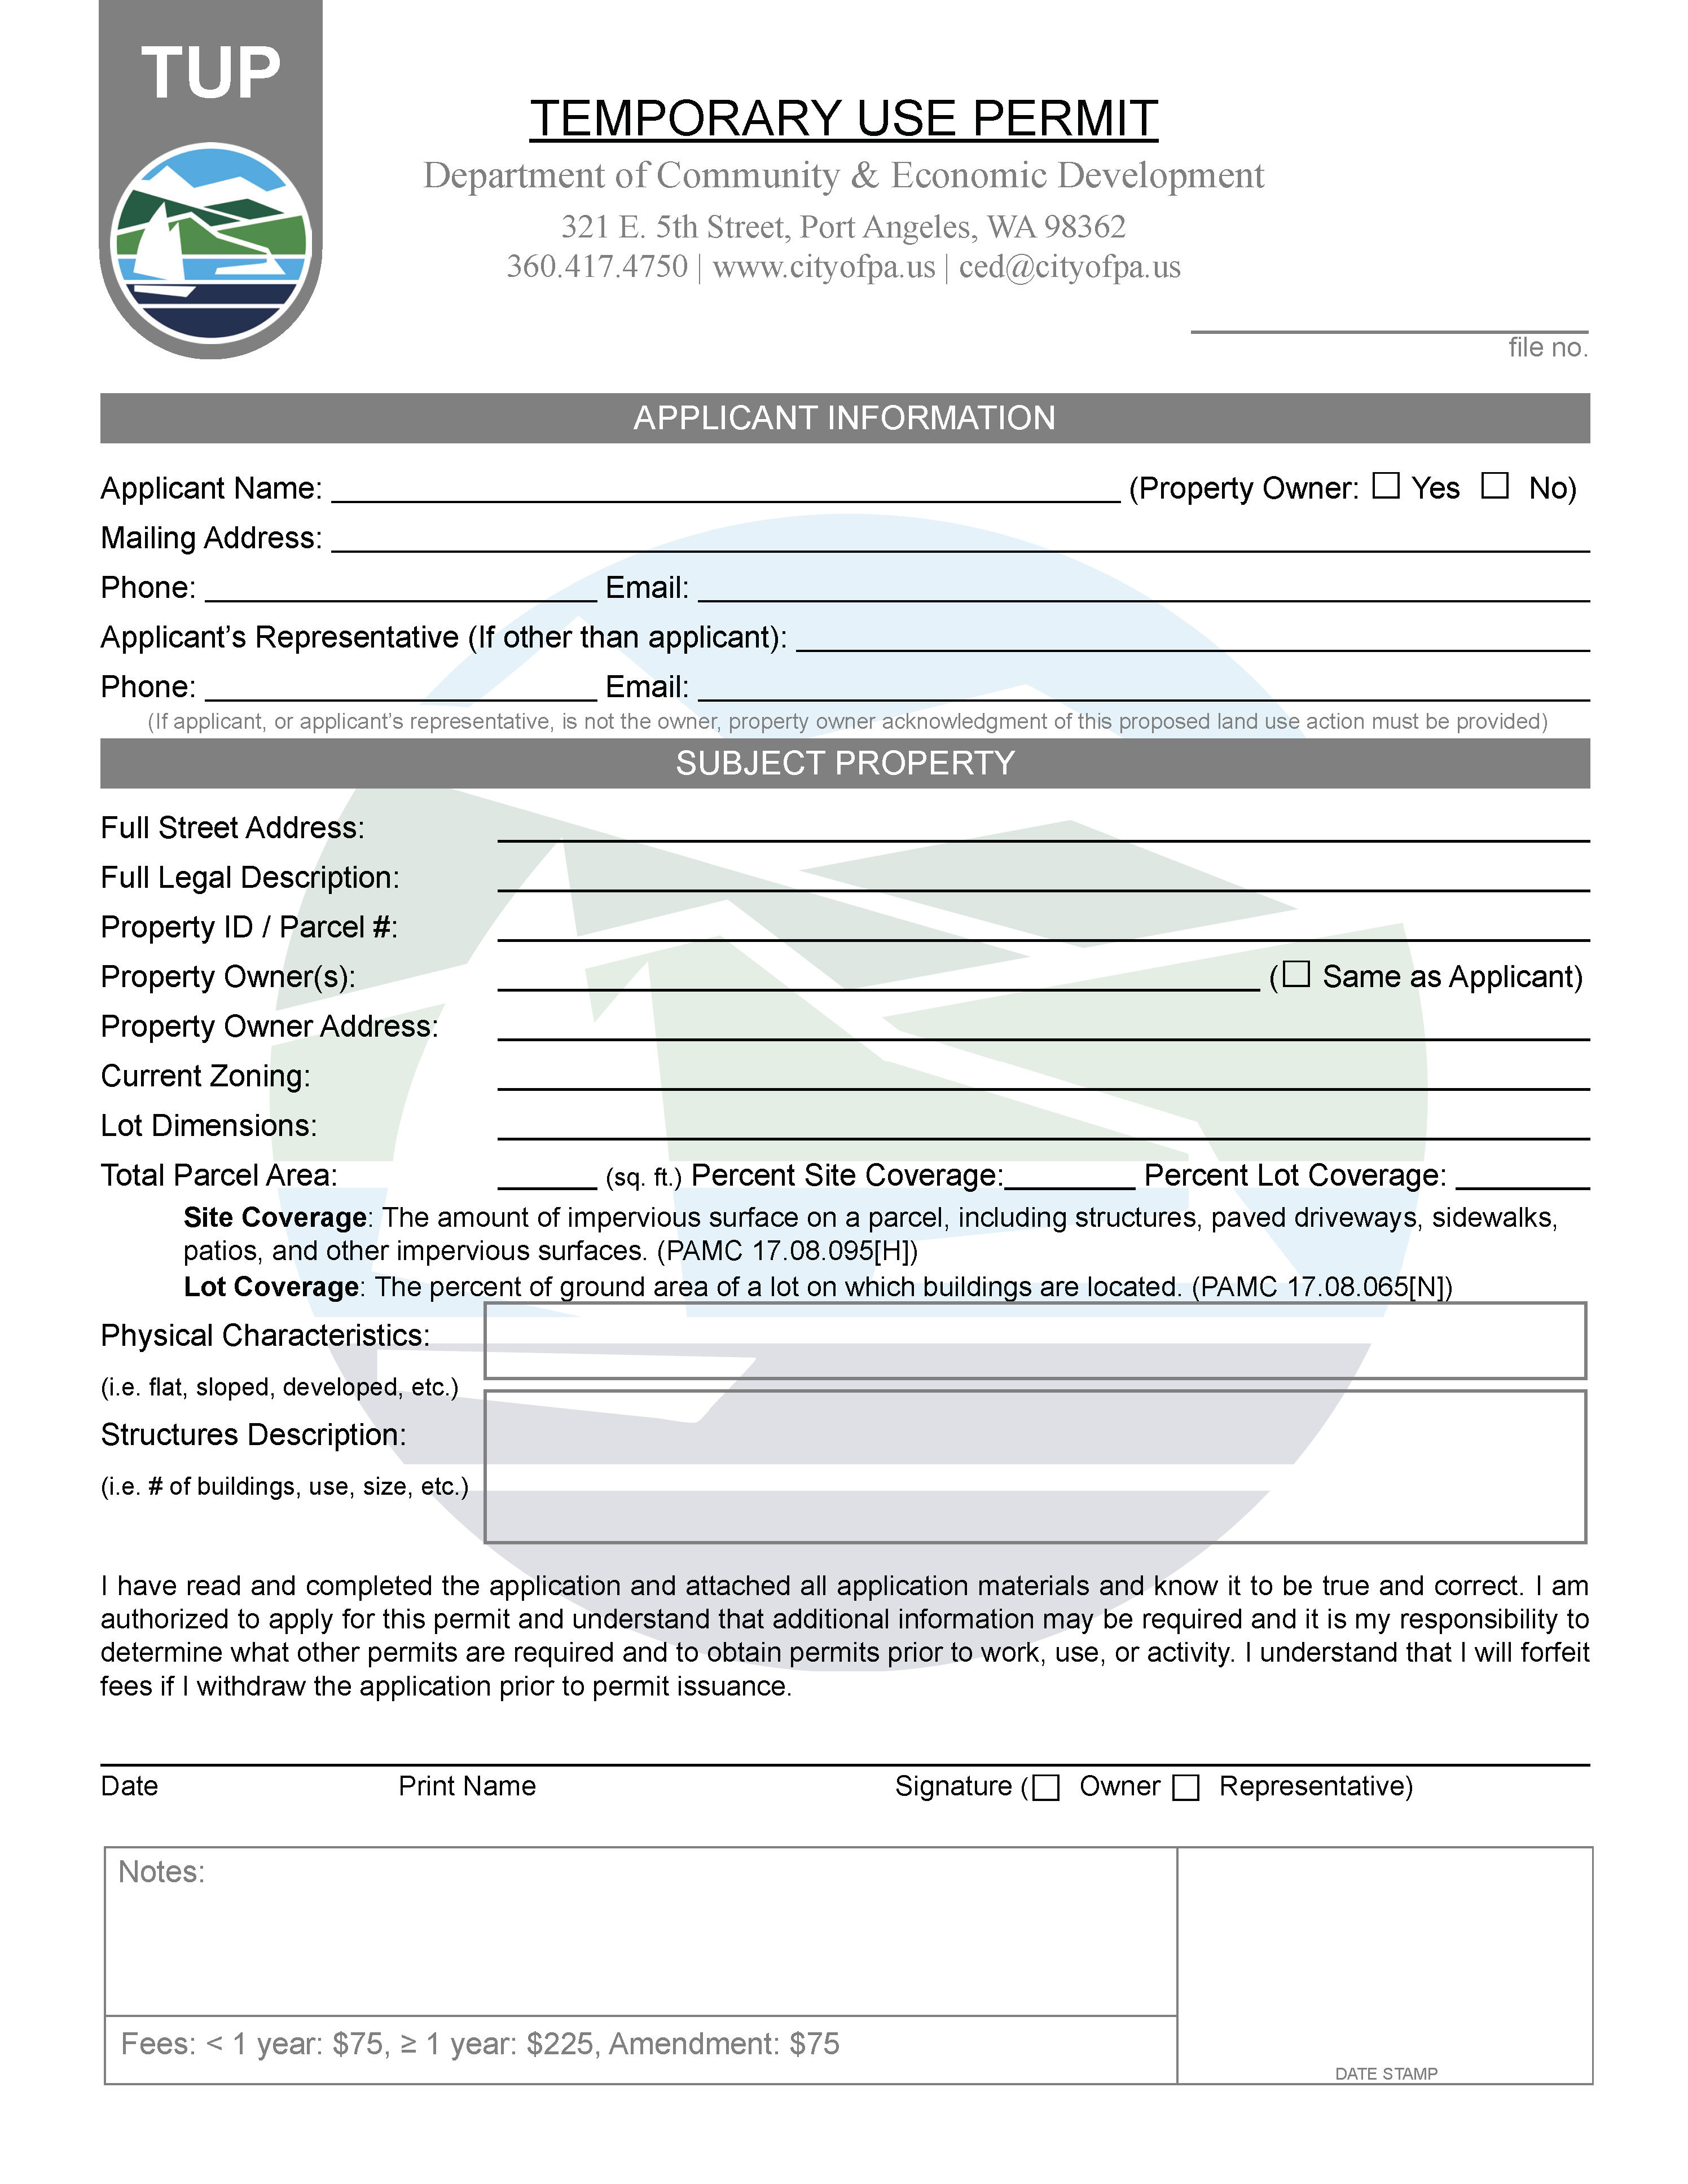 Temporary Use Permit Application